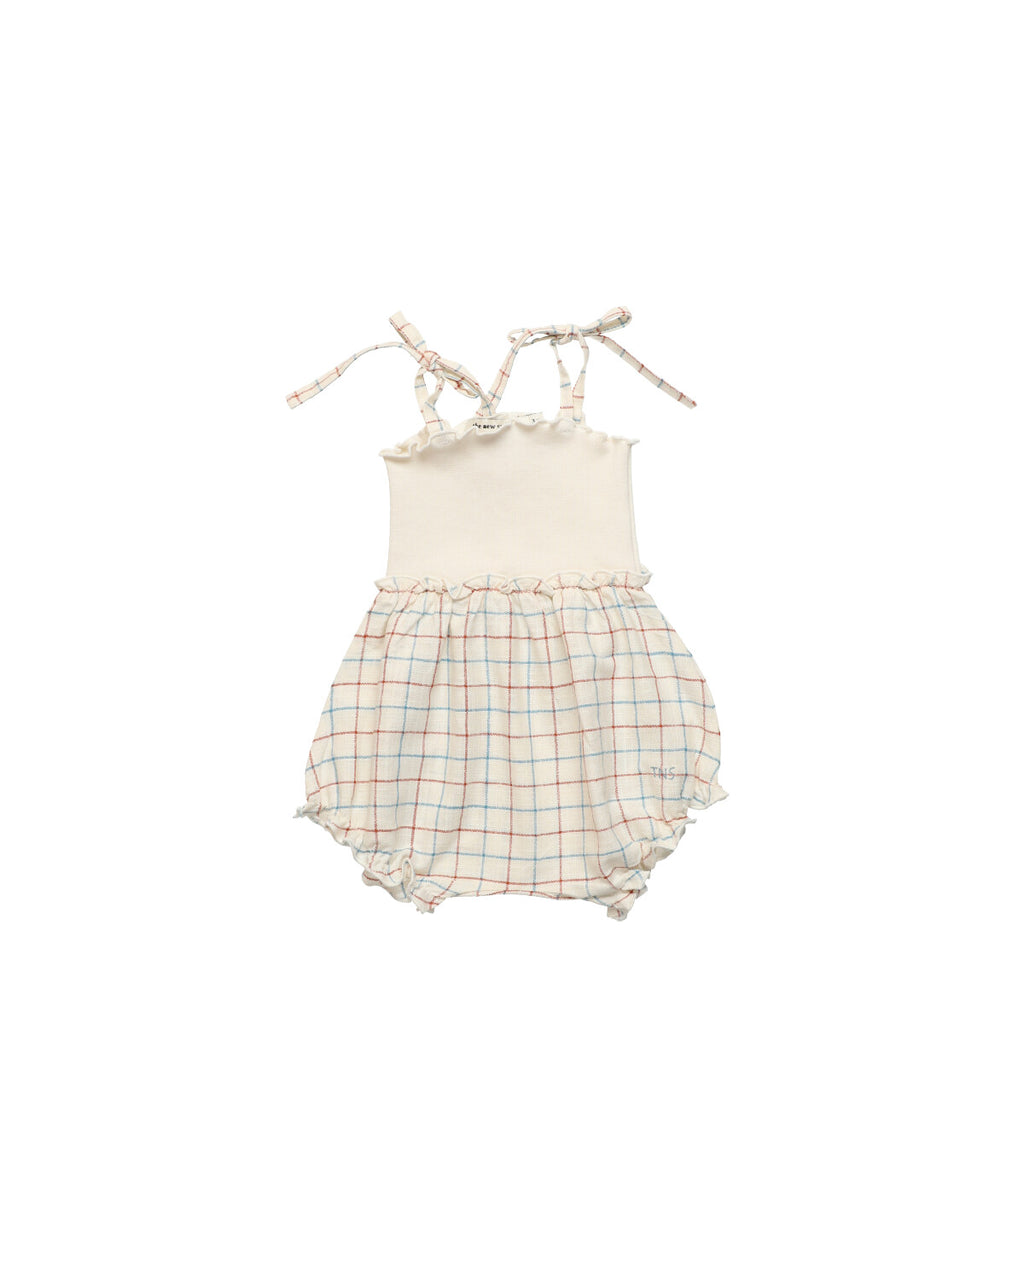 The New Society Dylan Baby Romper - Window Check